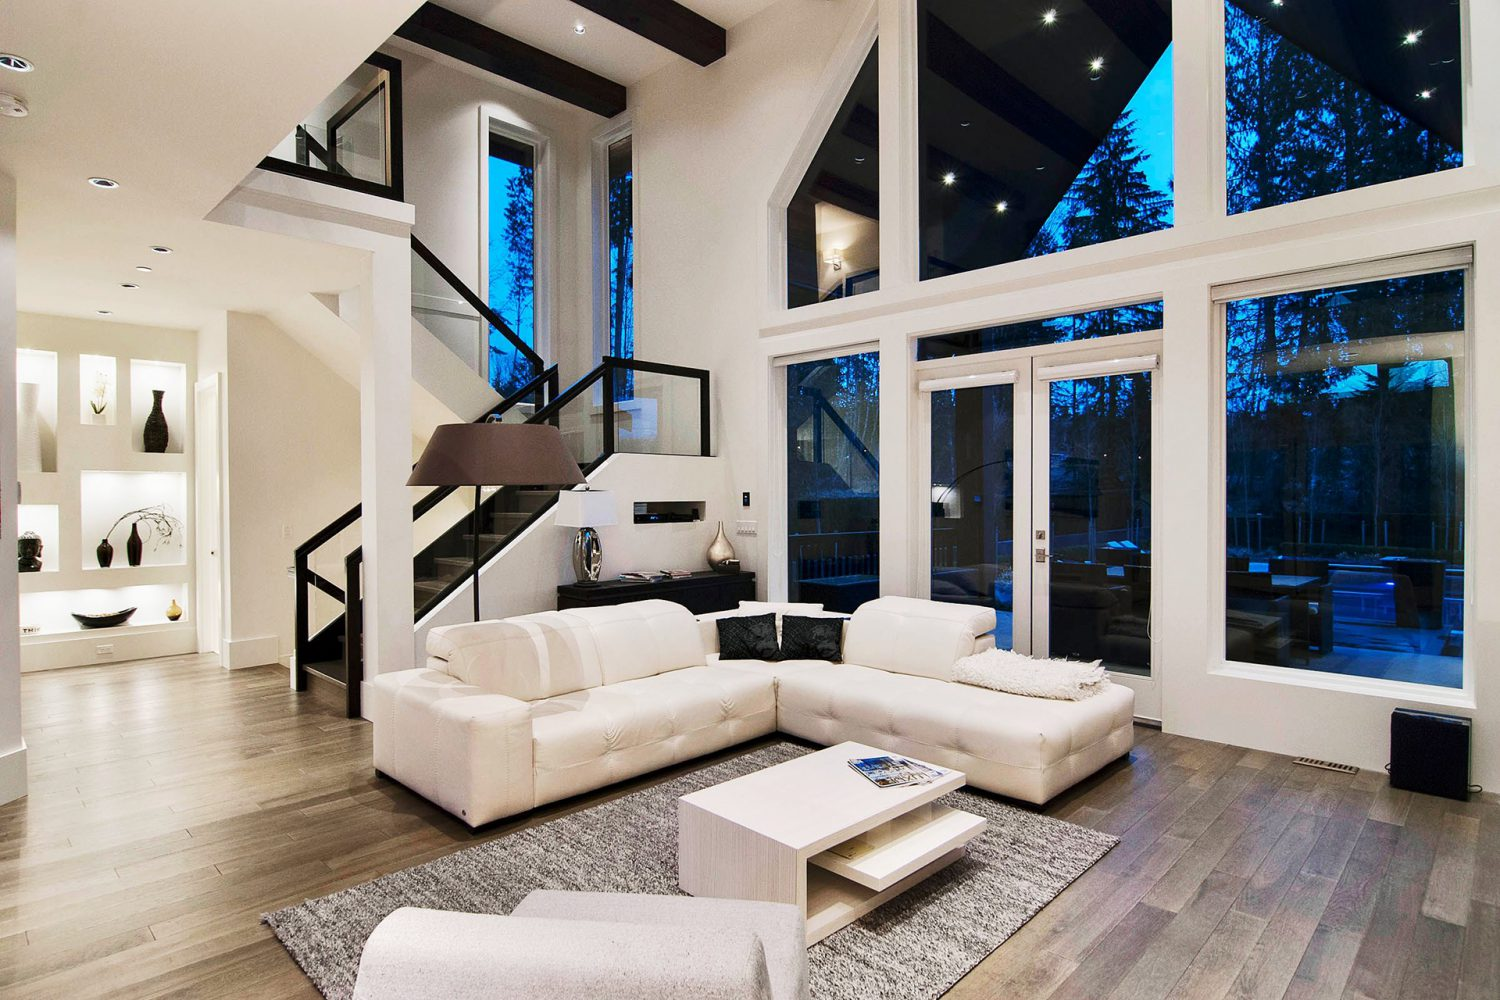 Forest project living room designed by Midland Premium Properties in Vancouver, BC